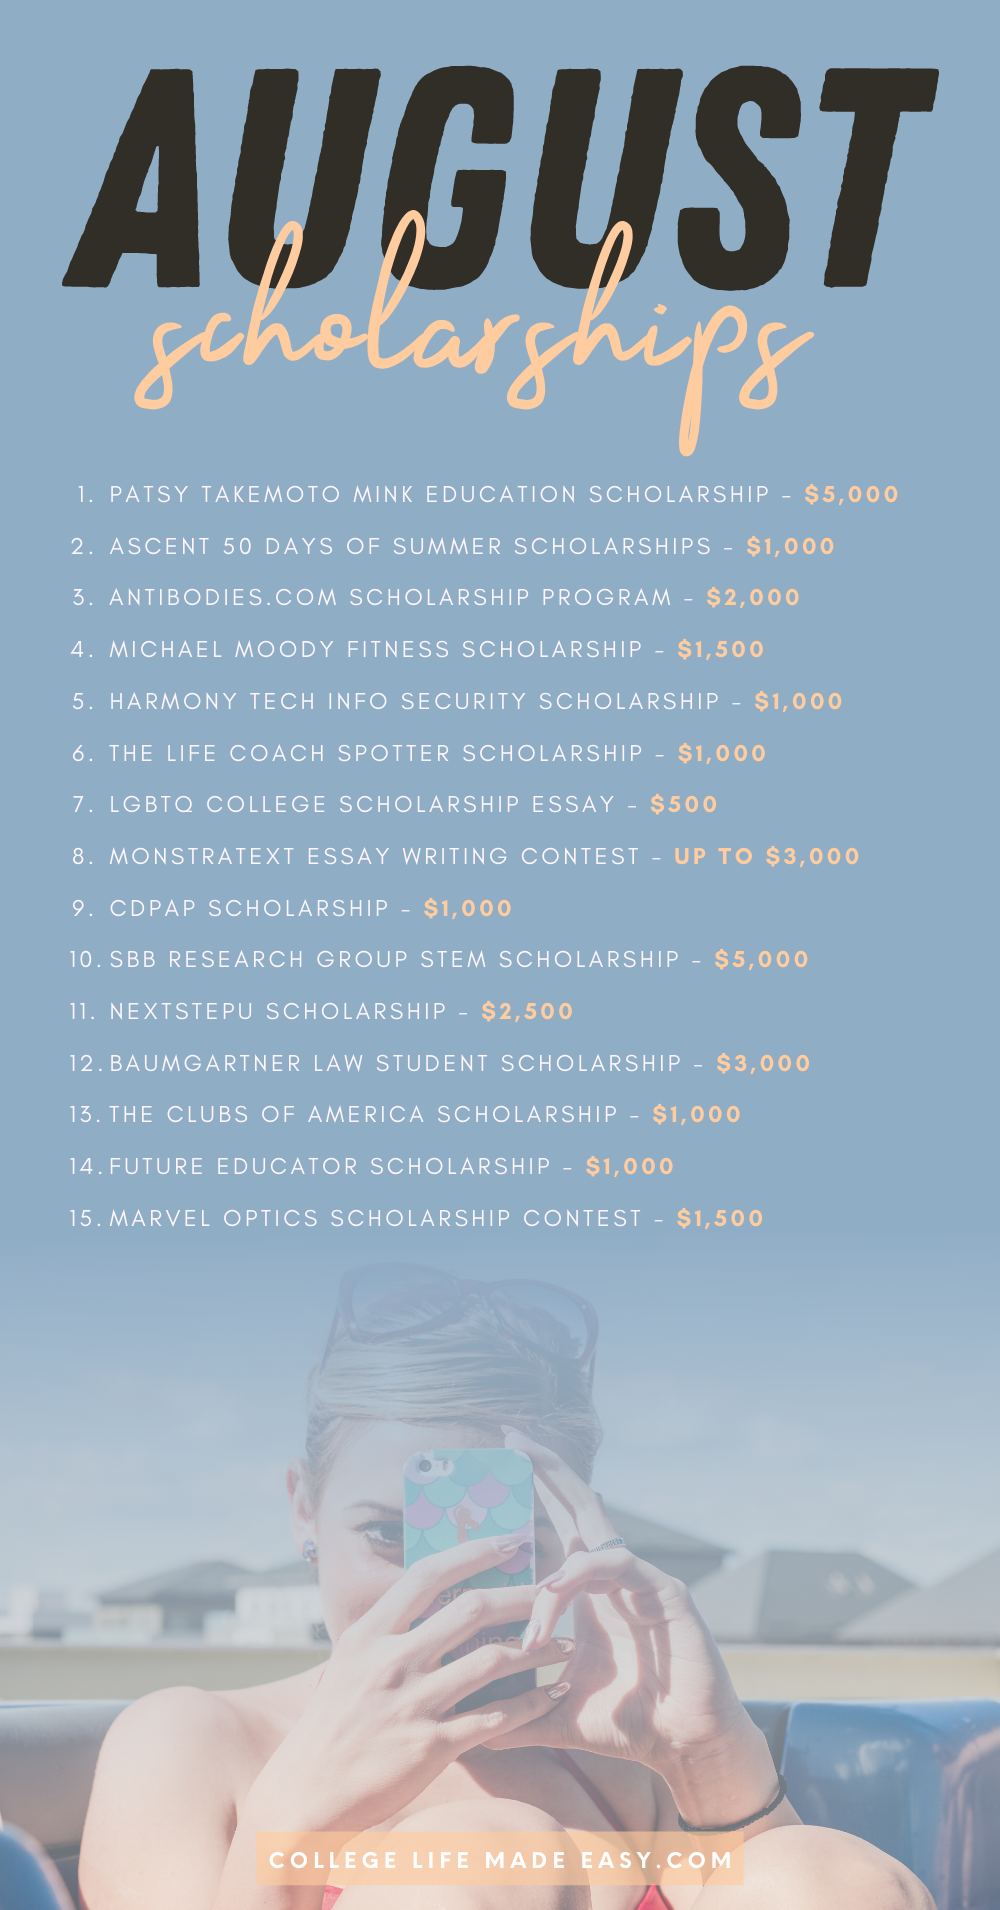 August scholarships list infographic